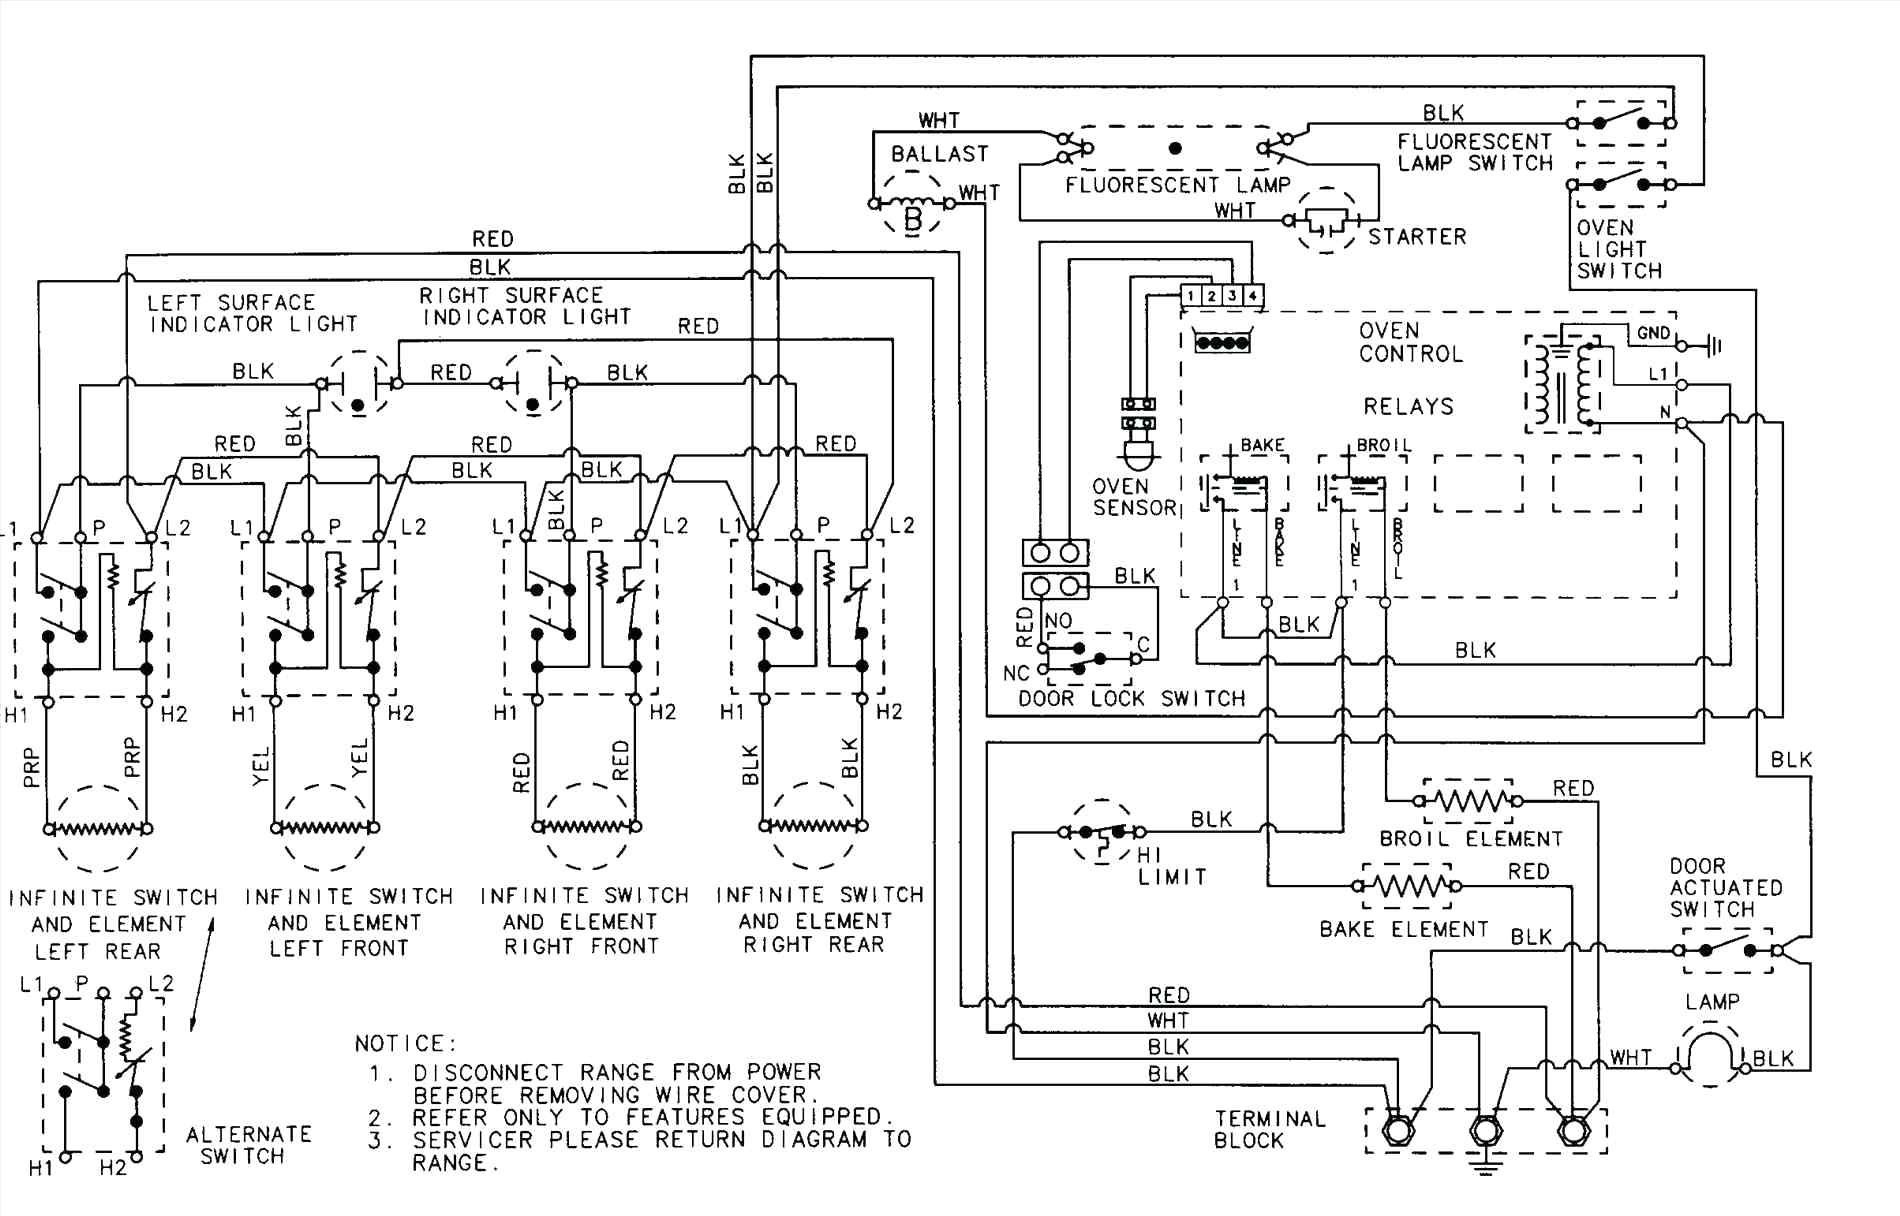 ge dryer wiring diagram Collection-Wiring Diagram for A Ge Dryer Fresh Ge Dryer Start Switch Wiring Diagram Fresh Ge Dryer 4-p